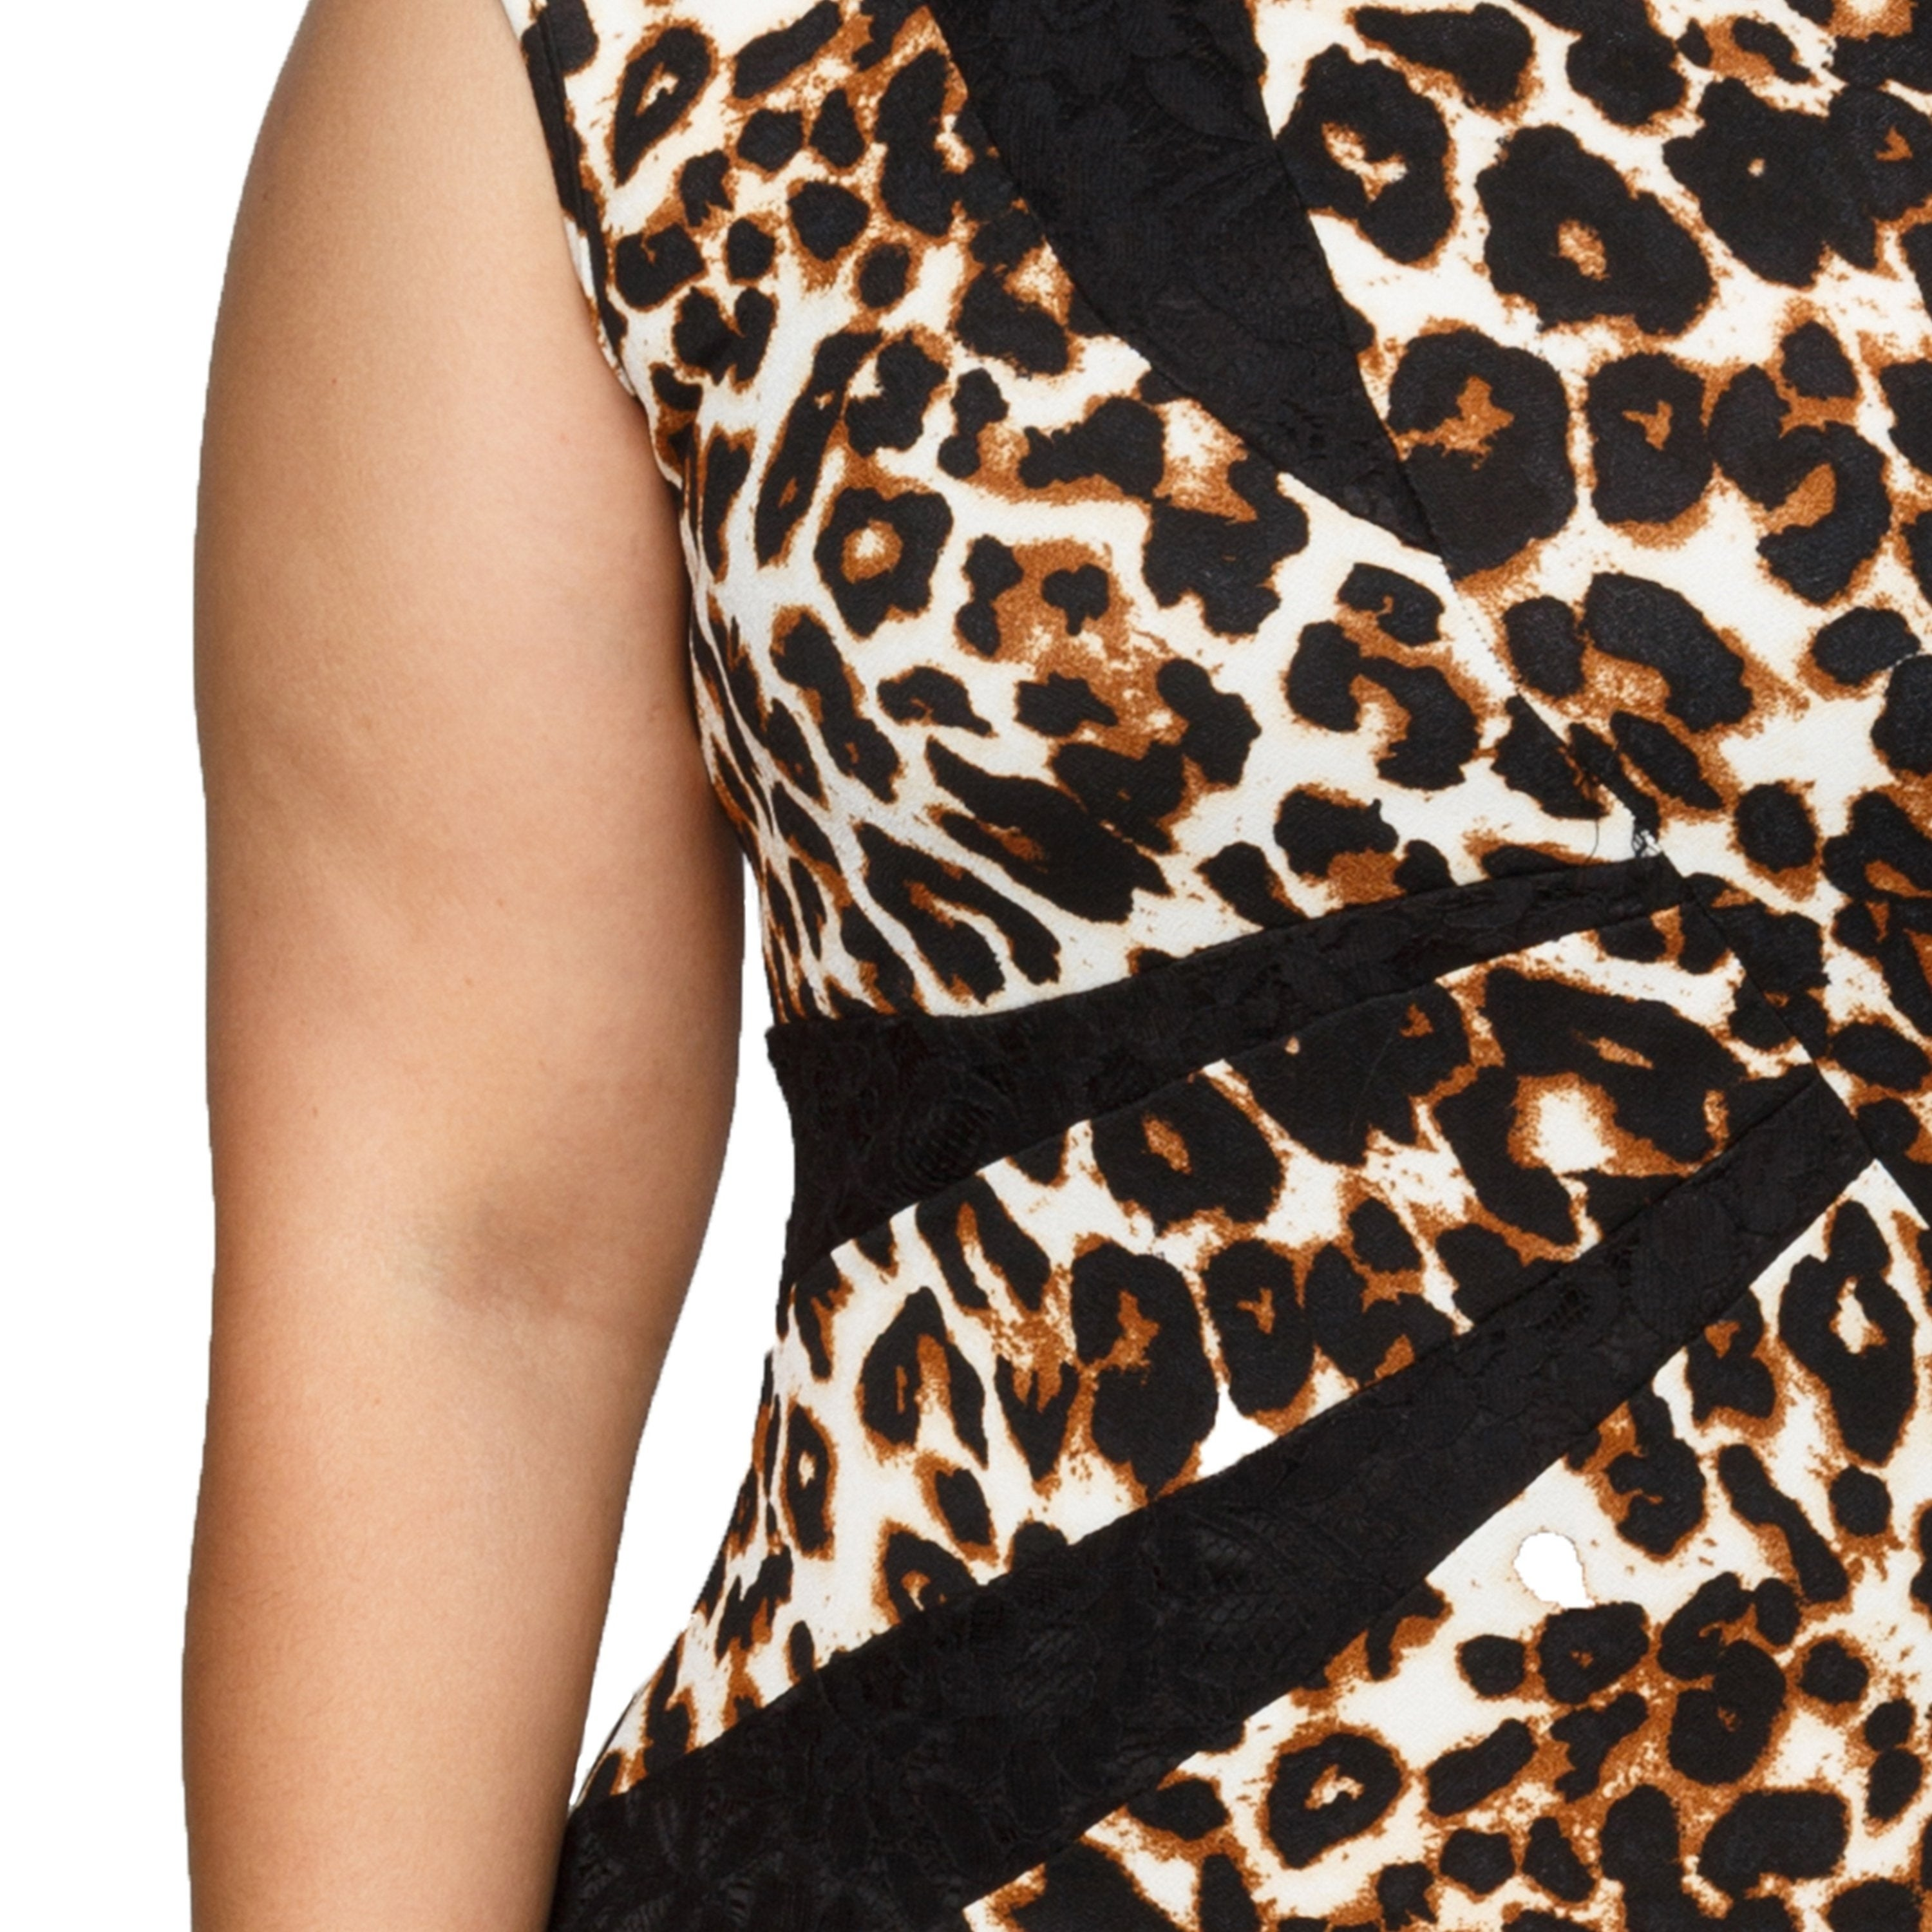 a6055330822 Shop Xehar Womens Plus Size Leopard Print Bodycon Sexy Dress - Free  Shipping On Orders Over  45 - Overstock - 17239122